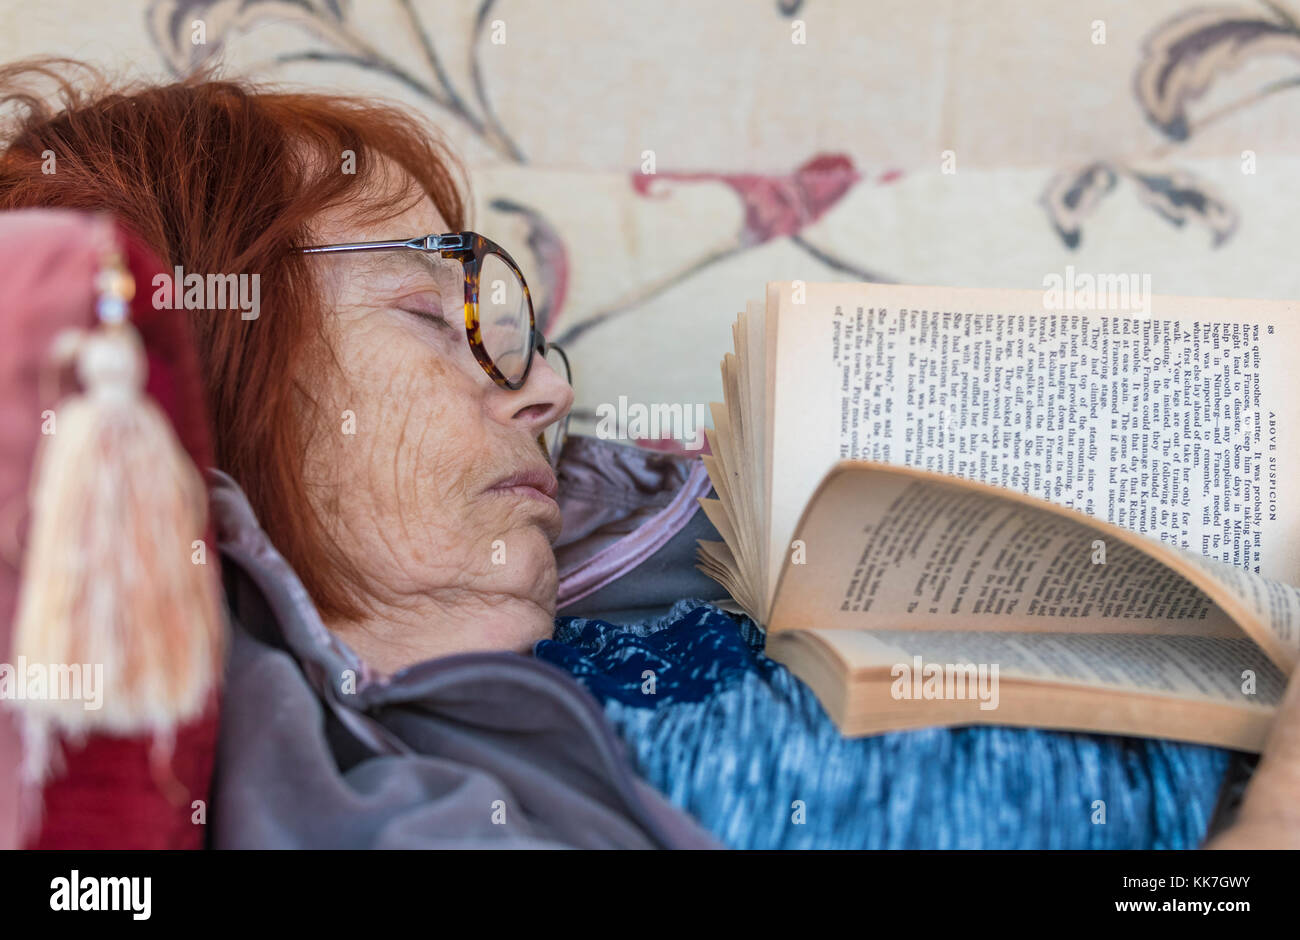 Elderly woman fallen asleep while laying on a sofa reading a book. - Stock Image